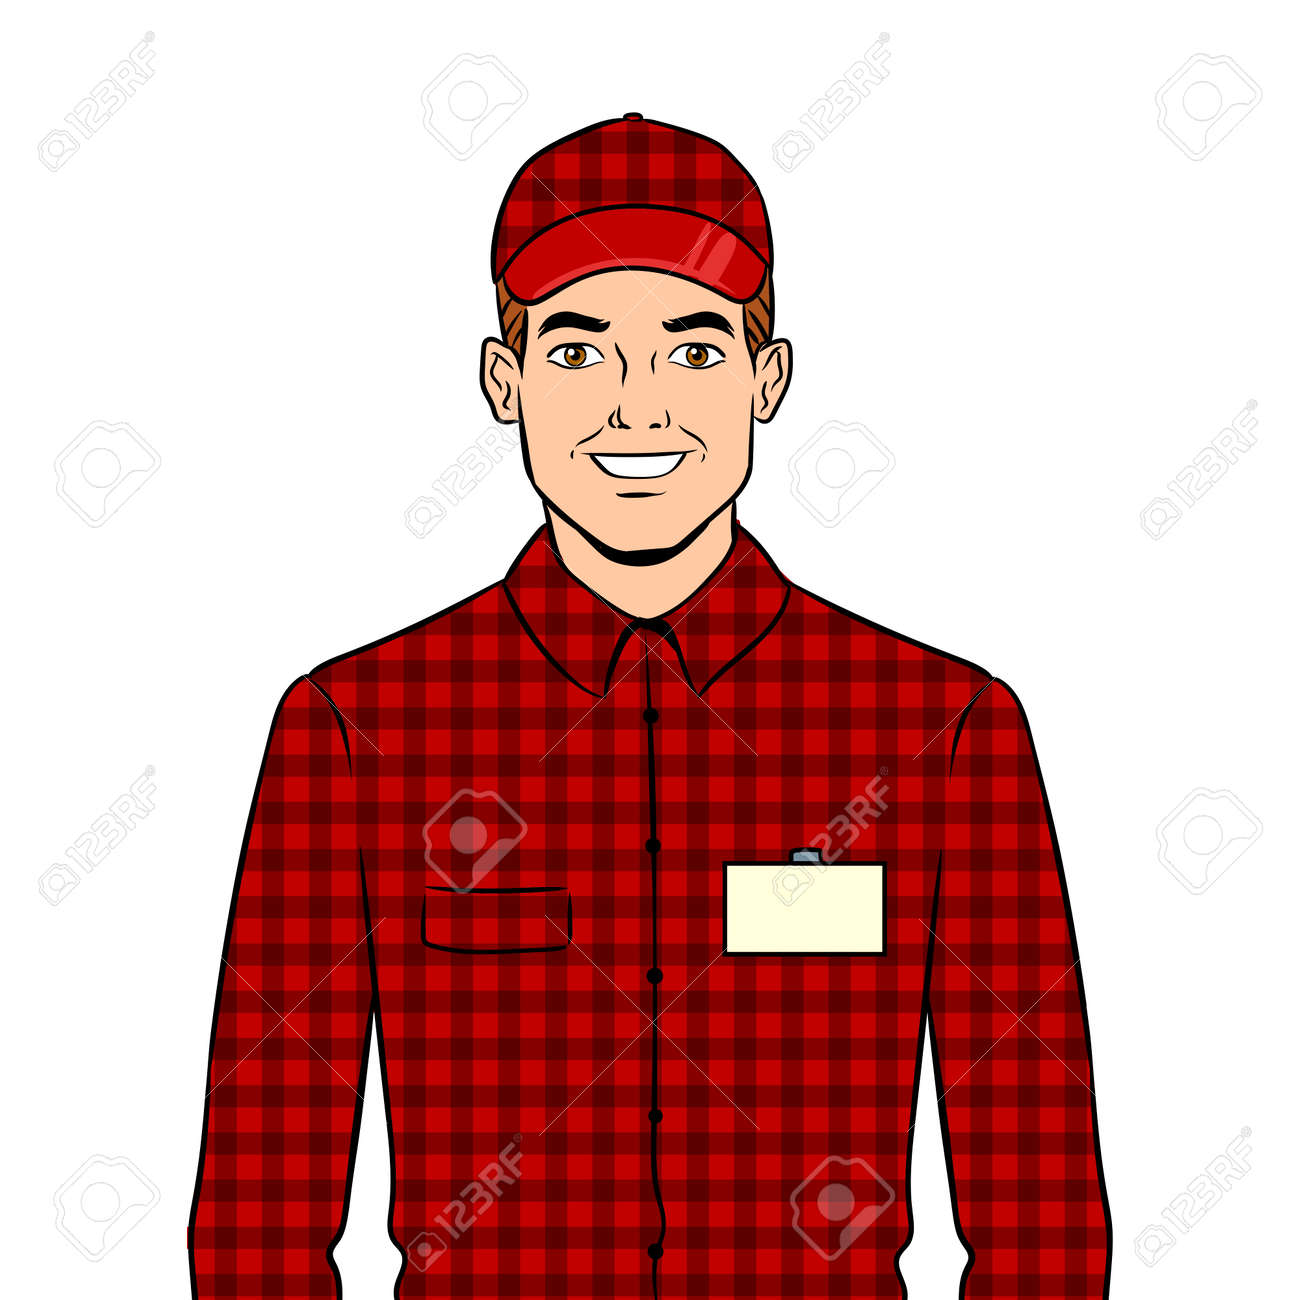 Seller guy with hat pop art vector illustration. Stock Vector - 98283330 7ac62c123a4